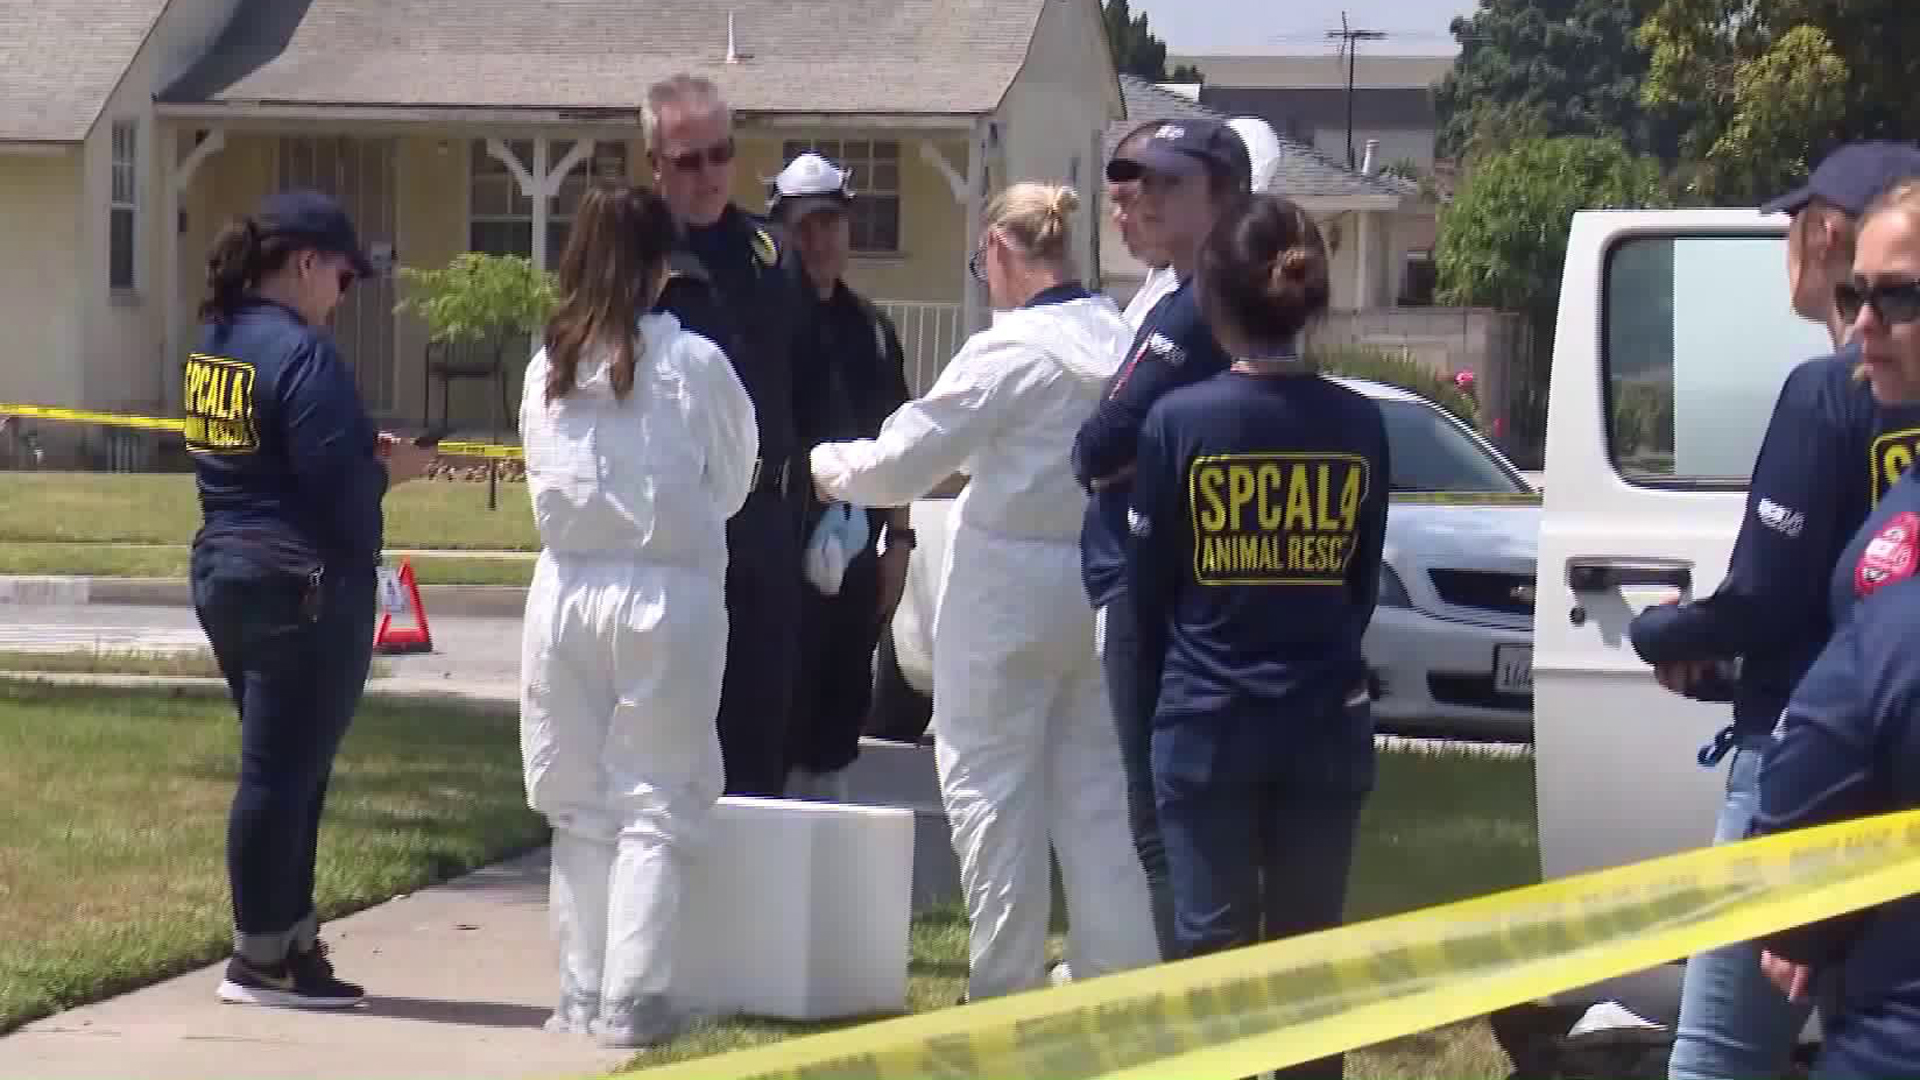 A team of investigators and animal rescue personnel responded to a residence in Downey on June 6, 2019. (Credit: KTLA)